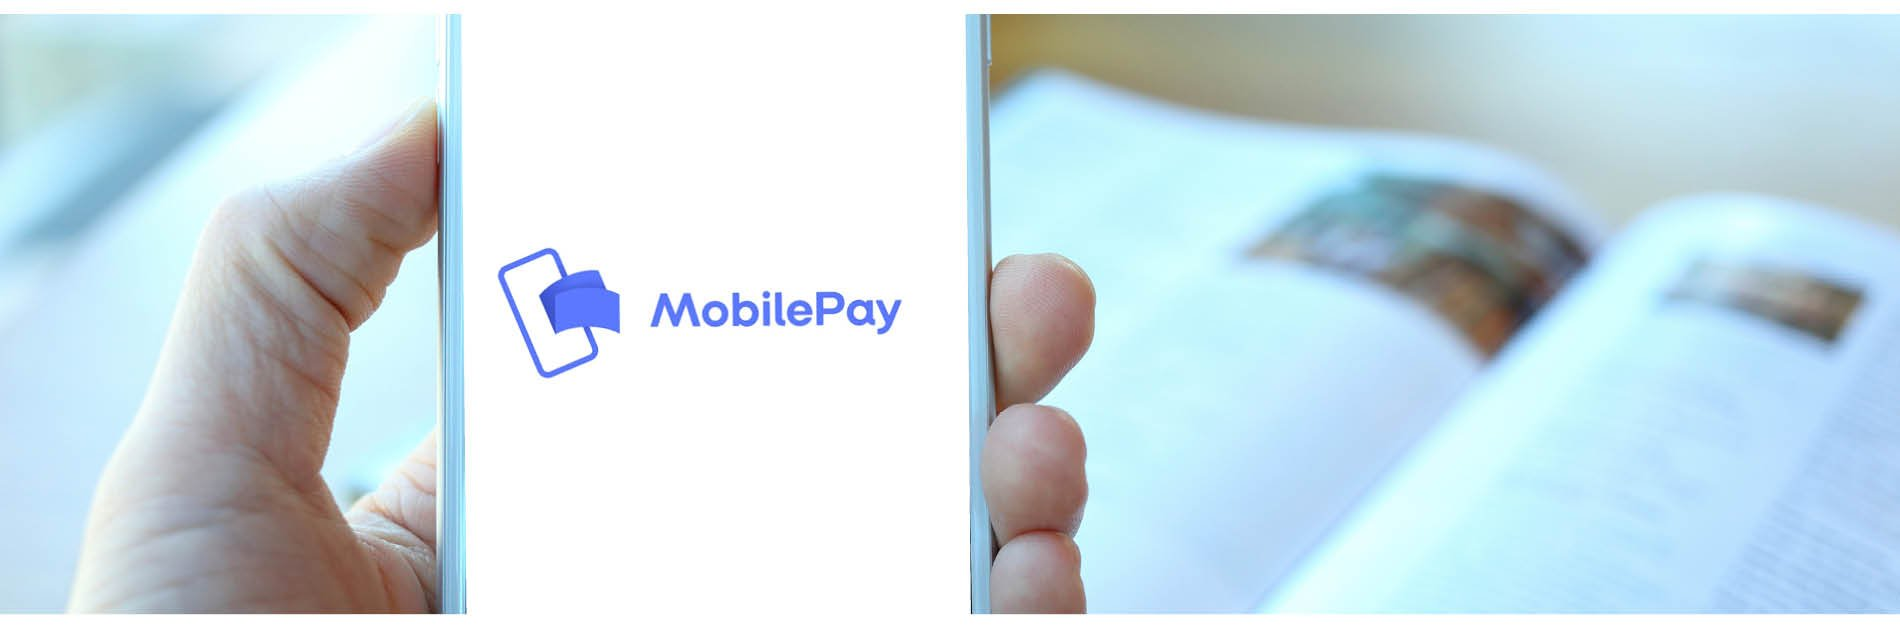 Continia MobilePay Subscriptions, Continia MobilePay Invoice